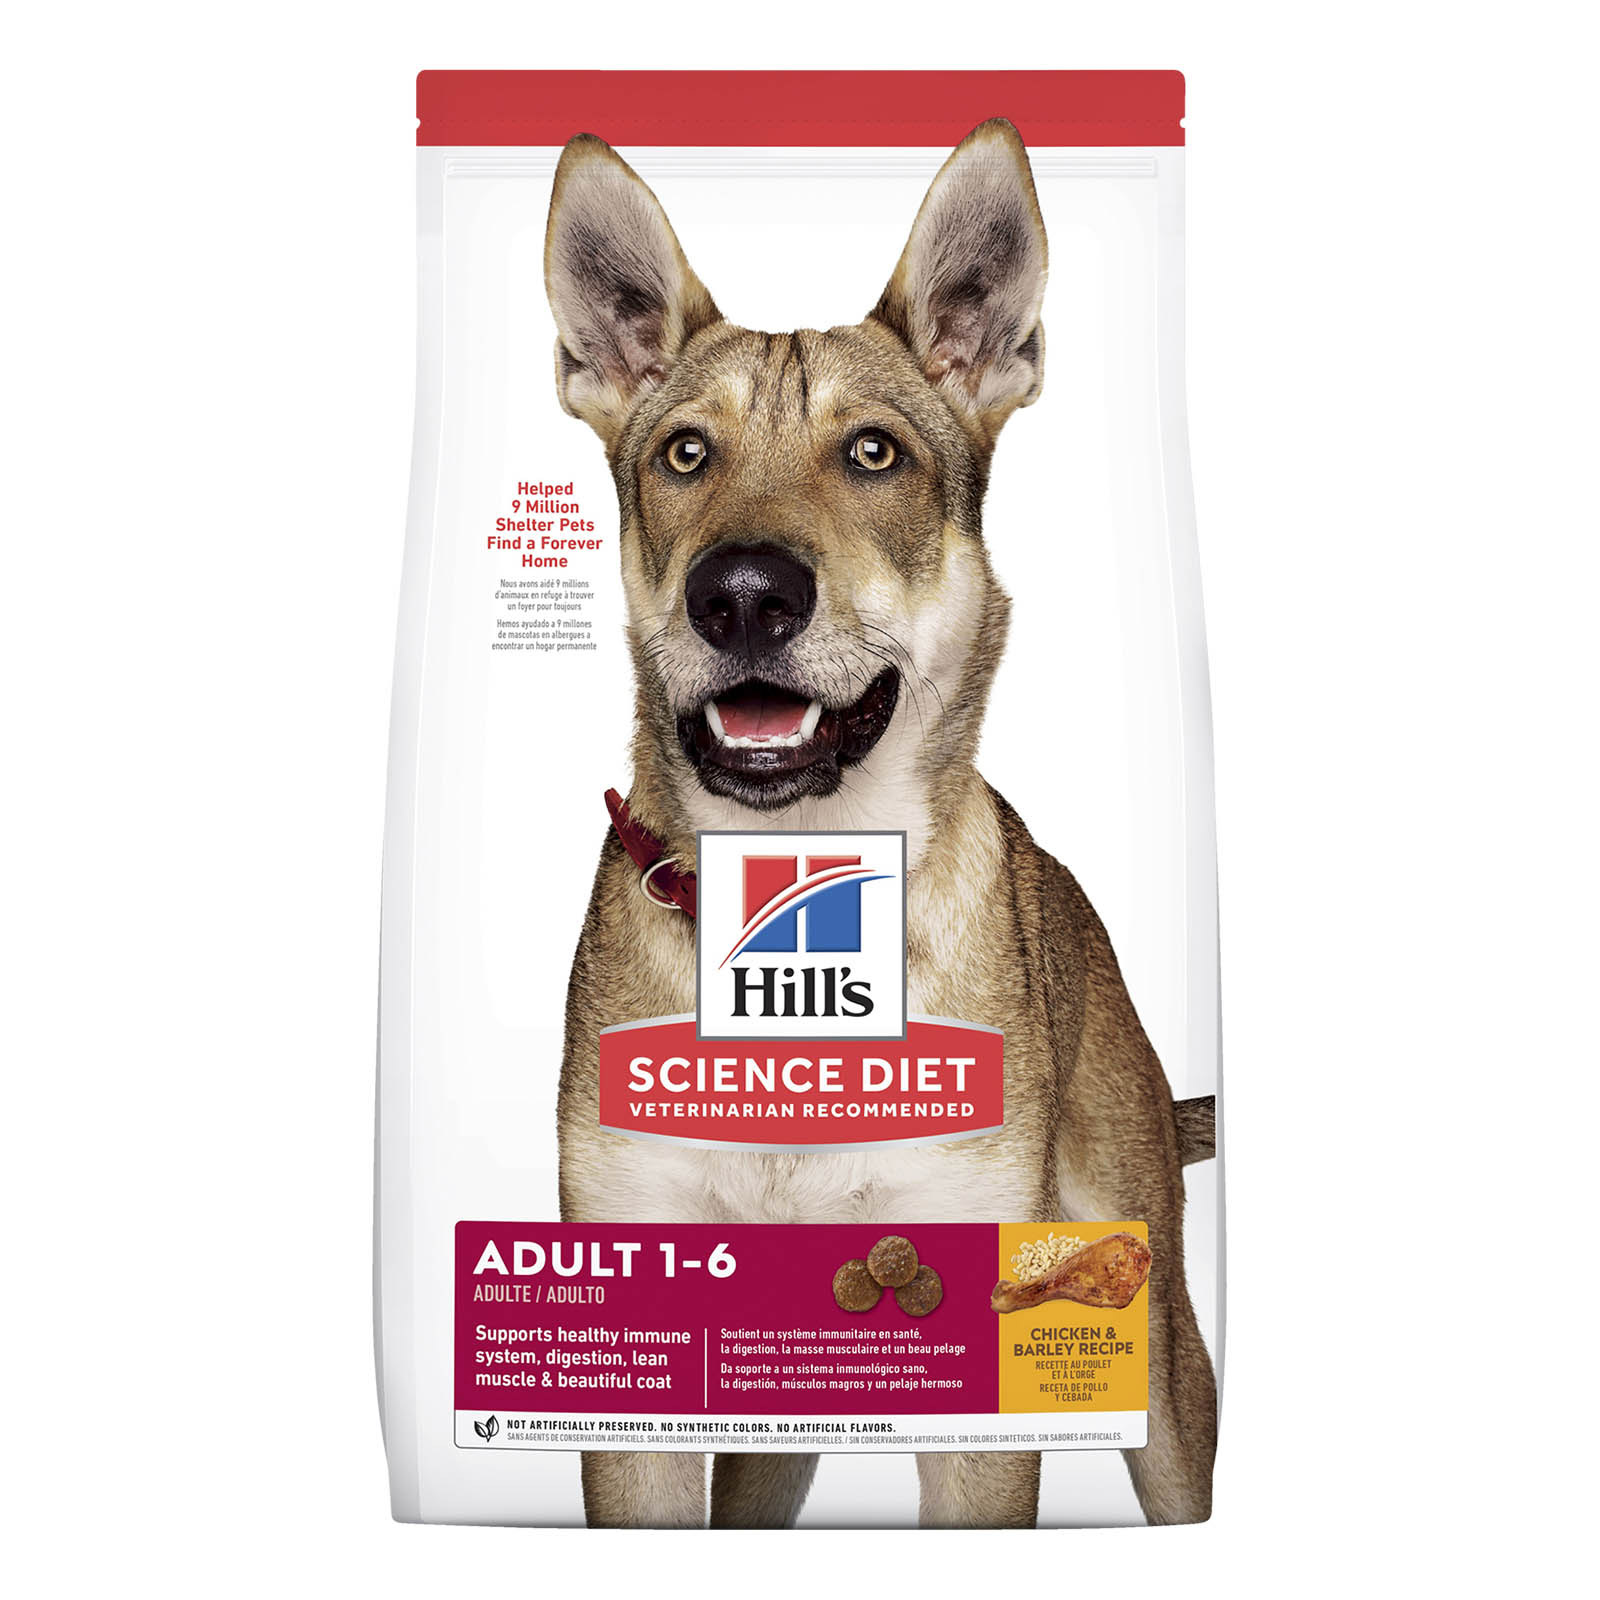 Hill's Science Diet Adult Chicken & Barley Dry Dog Food